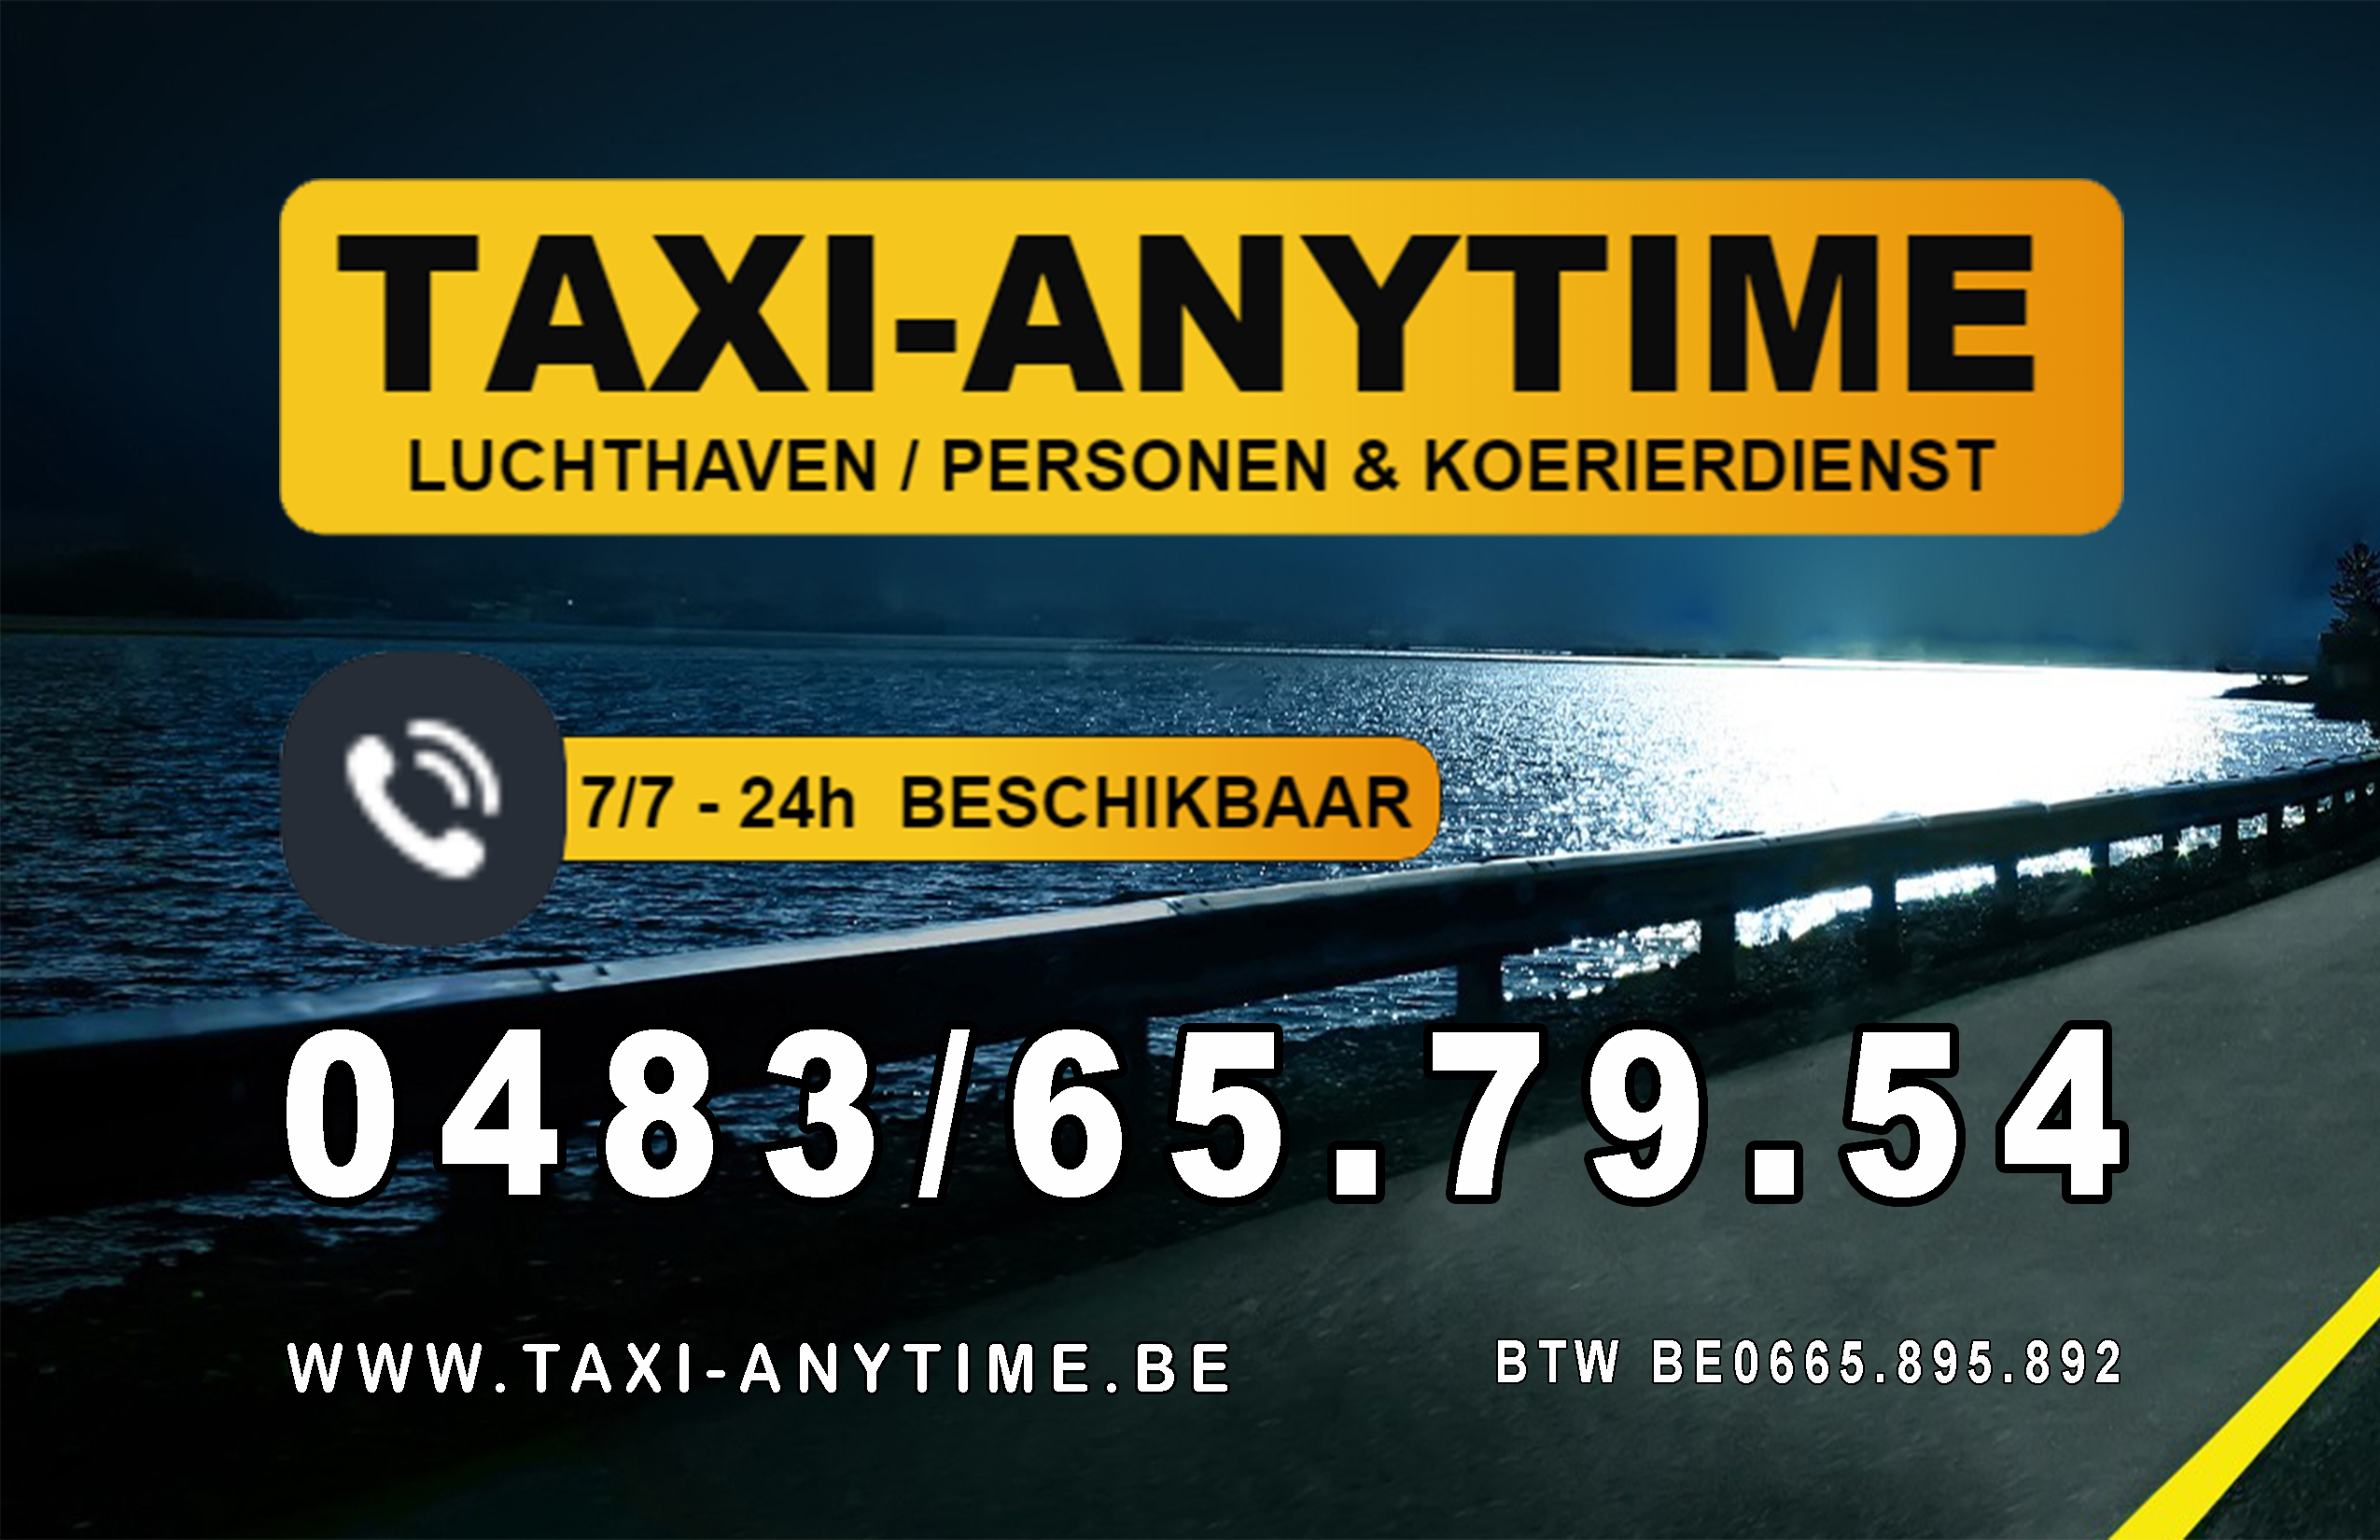 Taxi-anytime